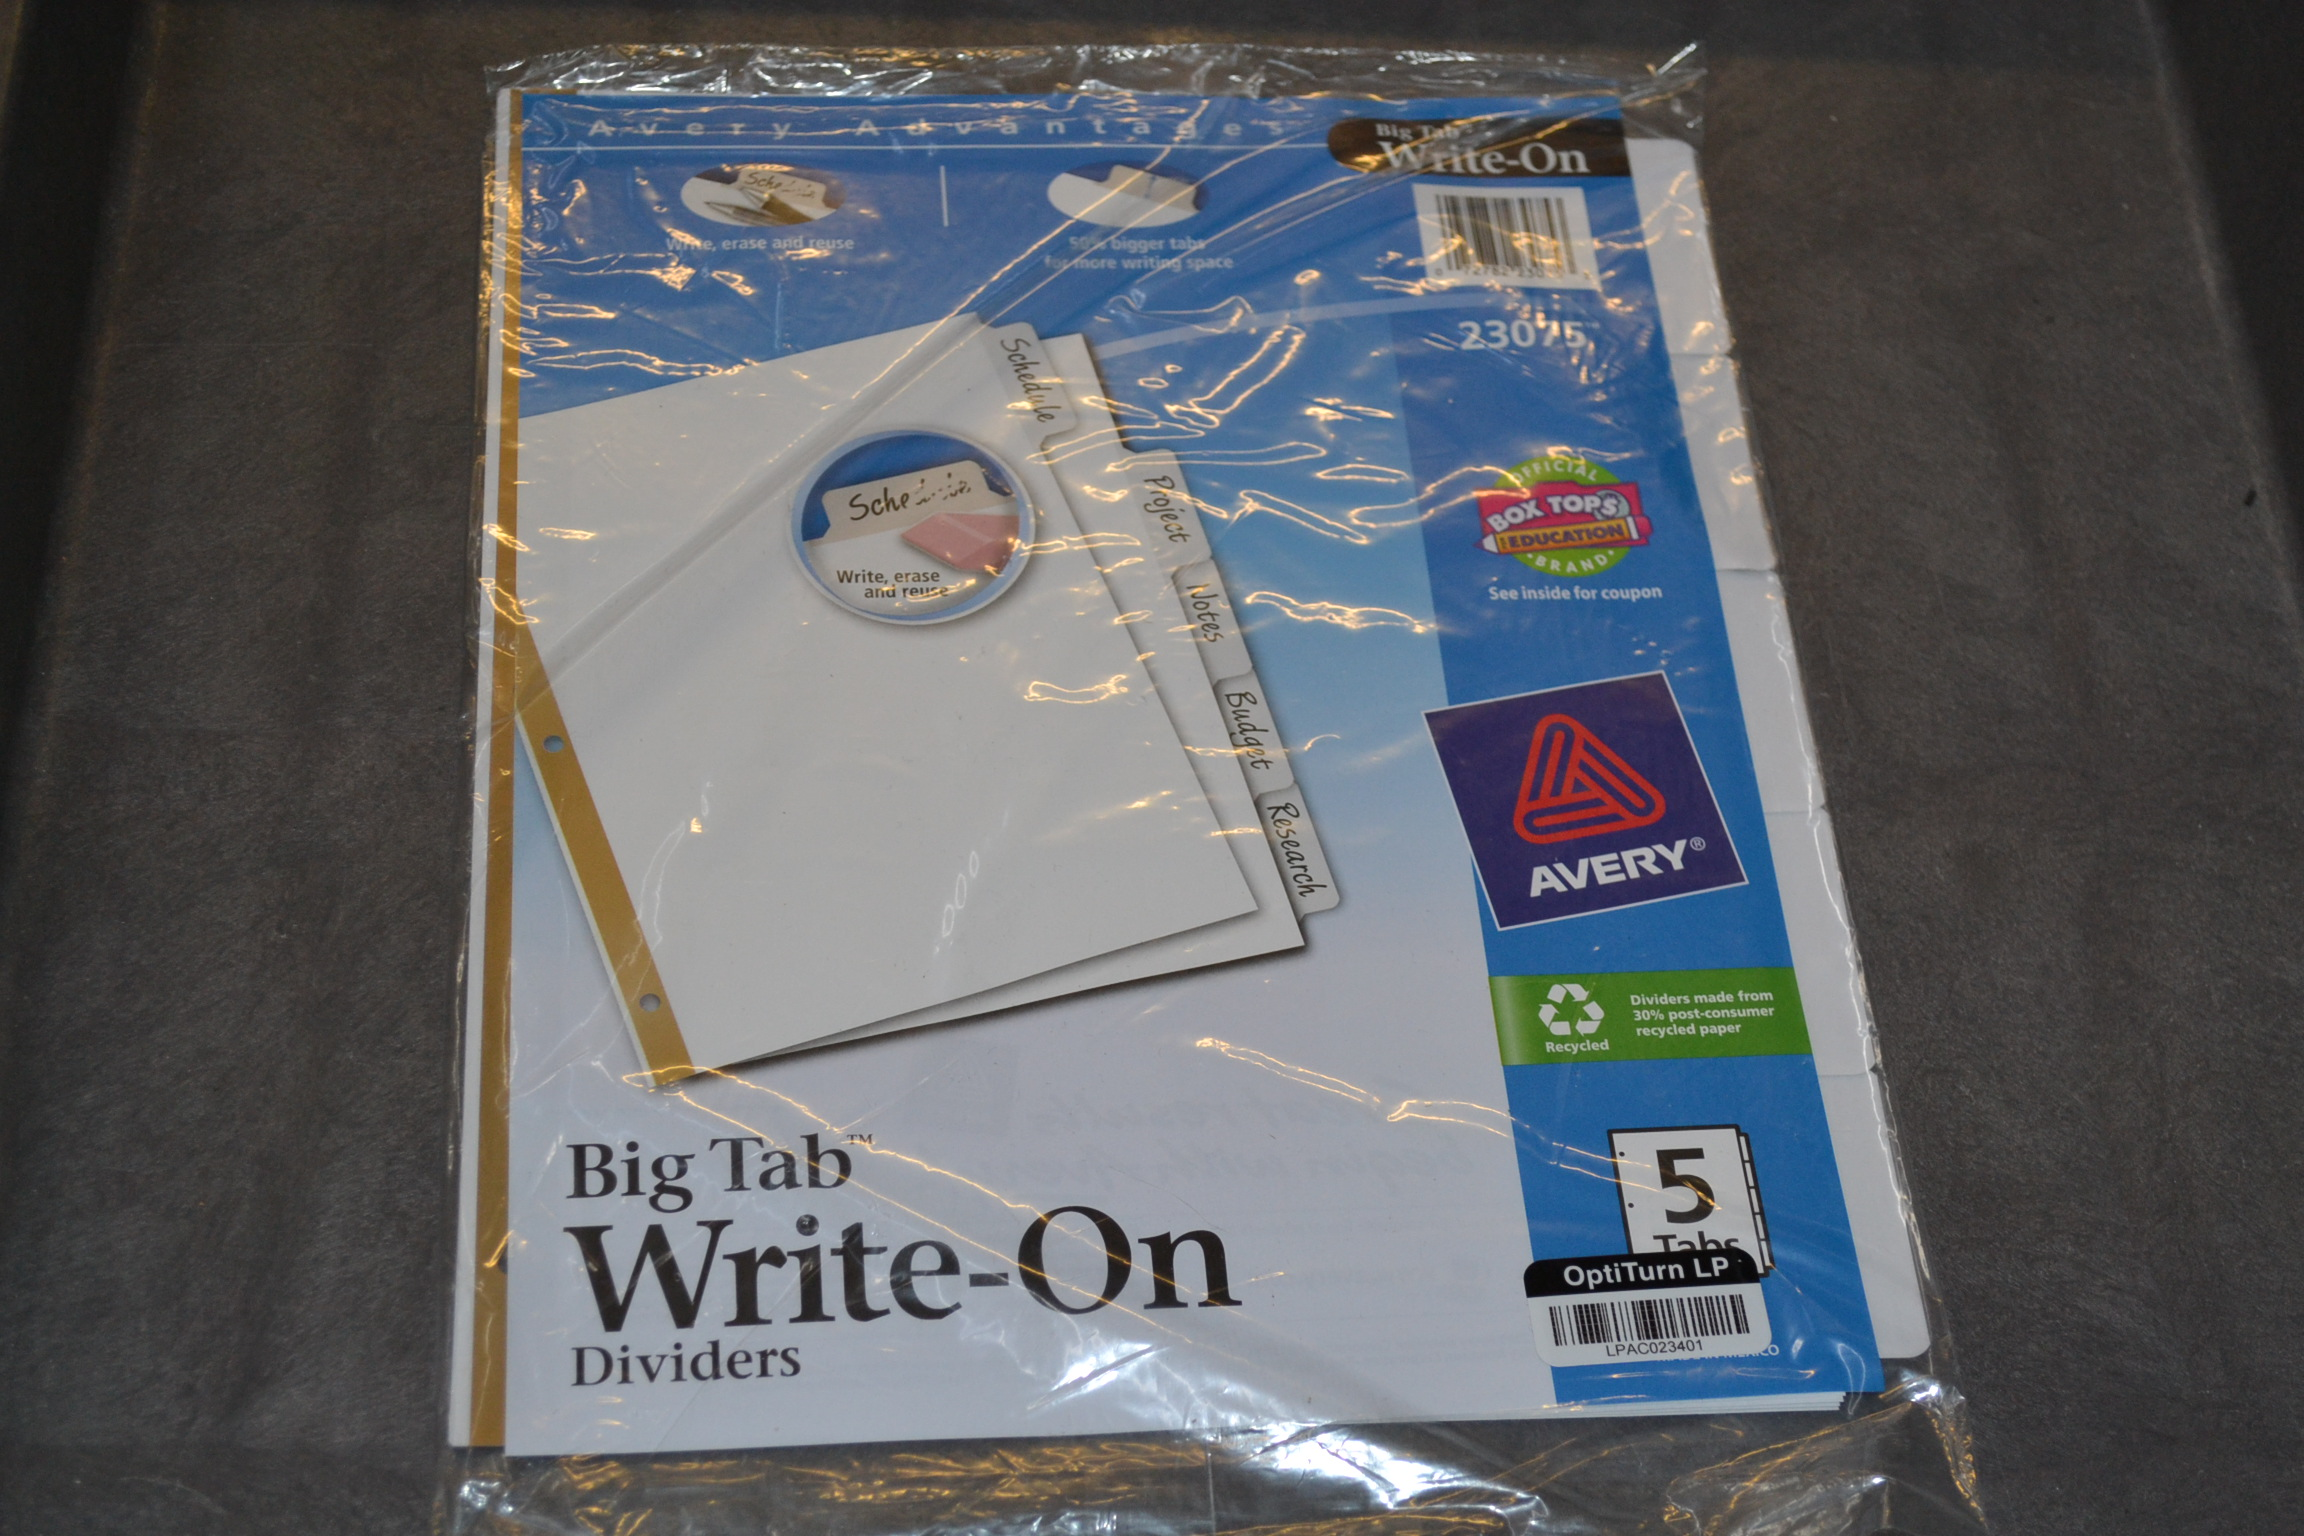 Avery Big Tab Write-On Dividers 5-TABS White 1 Set 23075 Clear Index